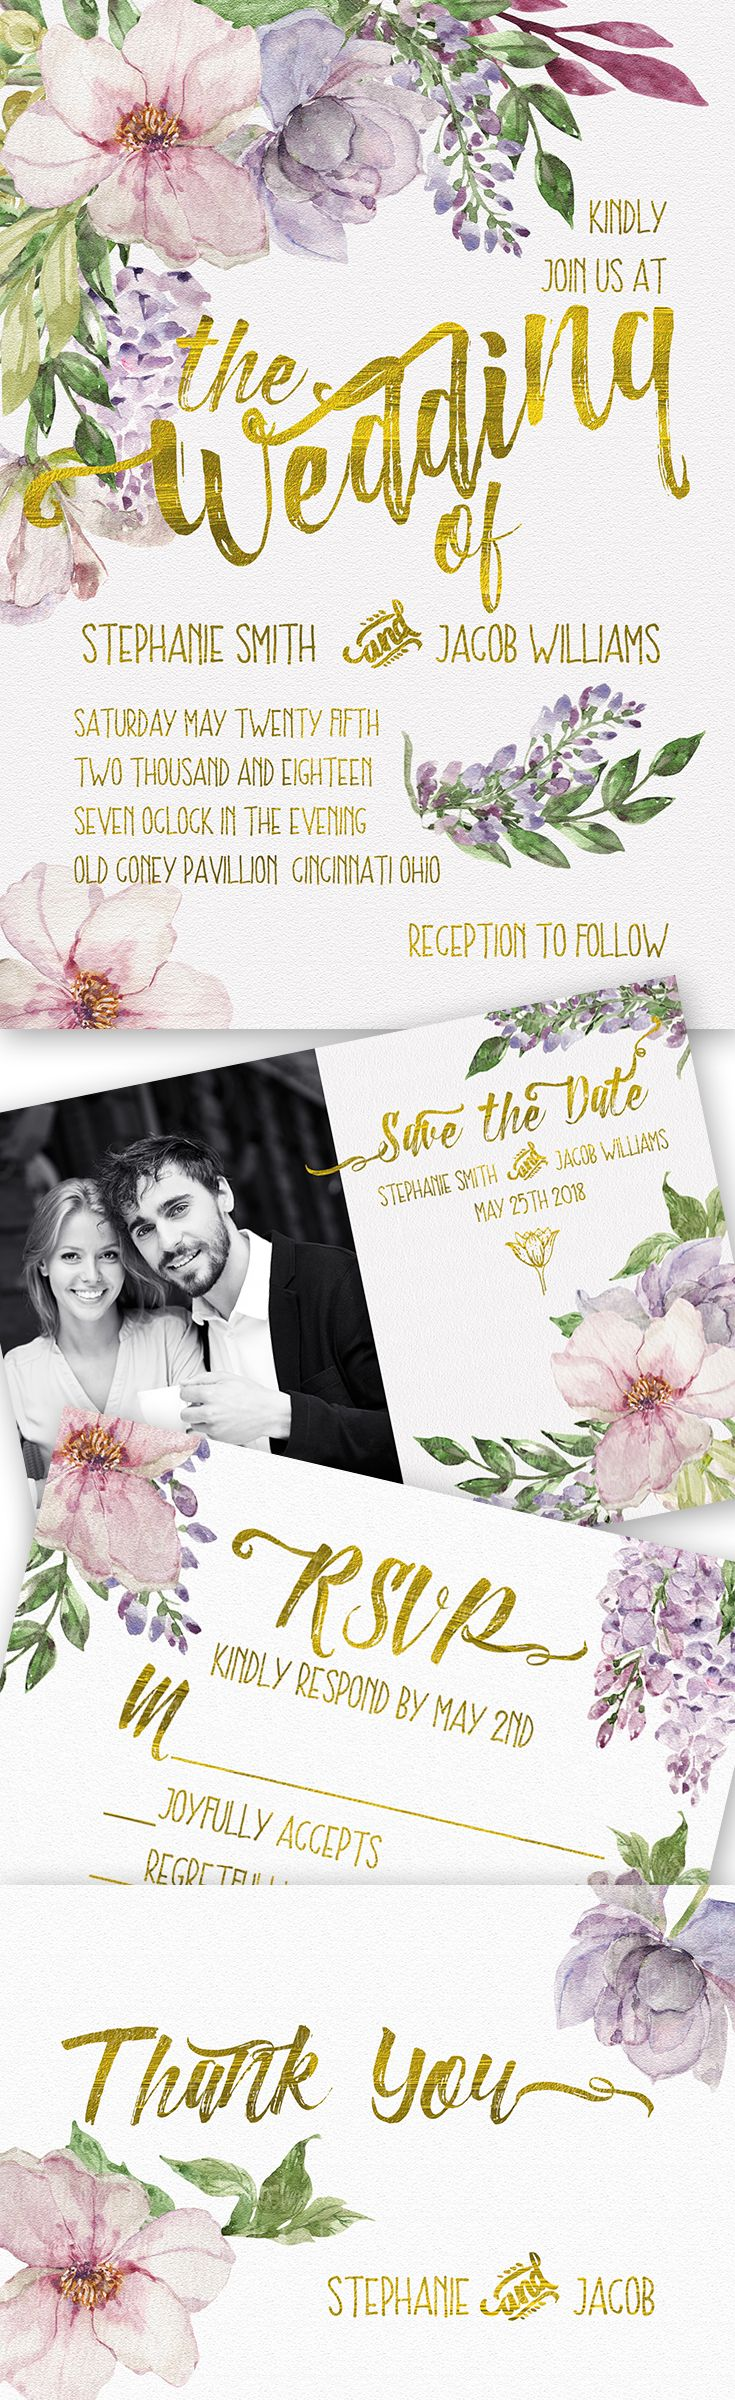 This is a wedding invitation suite, perfect for that spring or summer wedding!